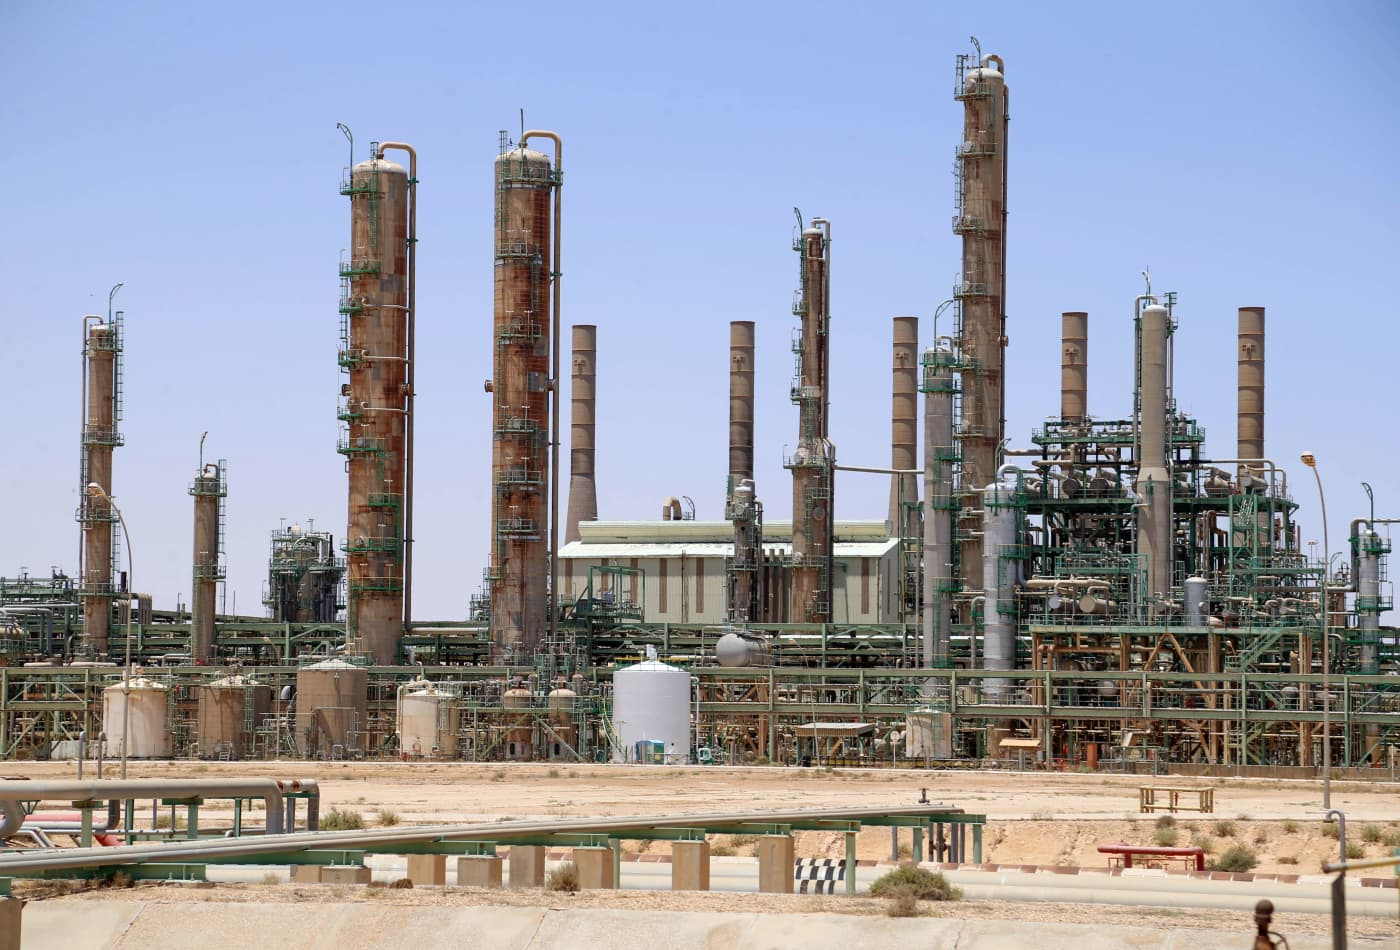 Libya's ramped-up oil output throws another wrench at oil prices and OPEC's plans